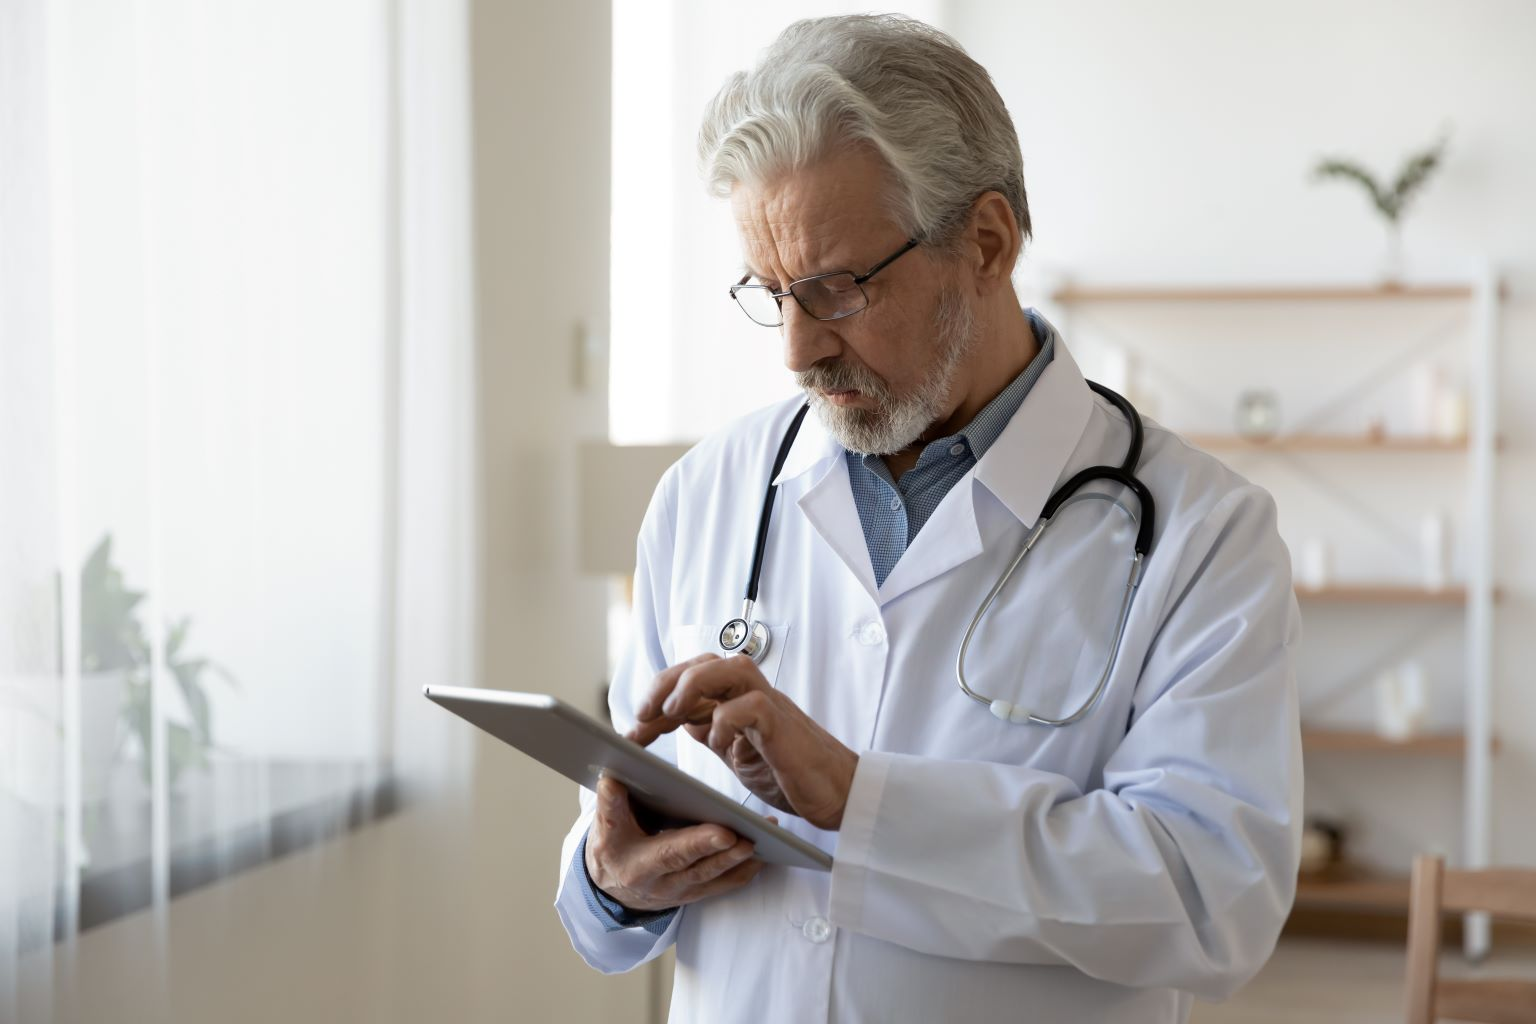 Male doctor holding a tablet in an office.